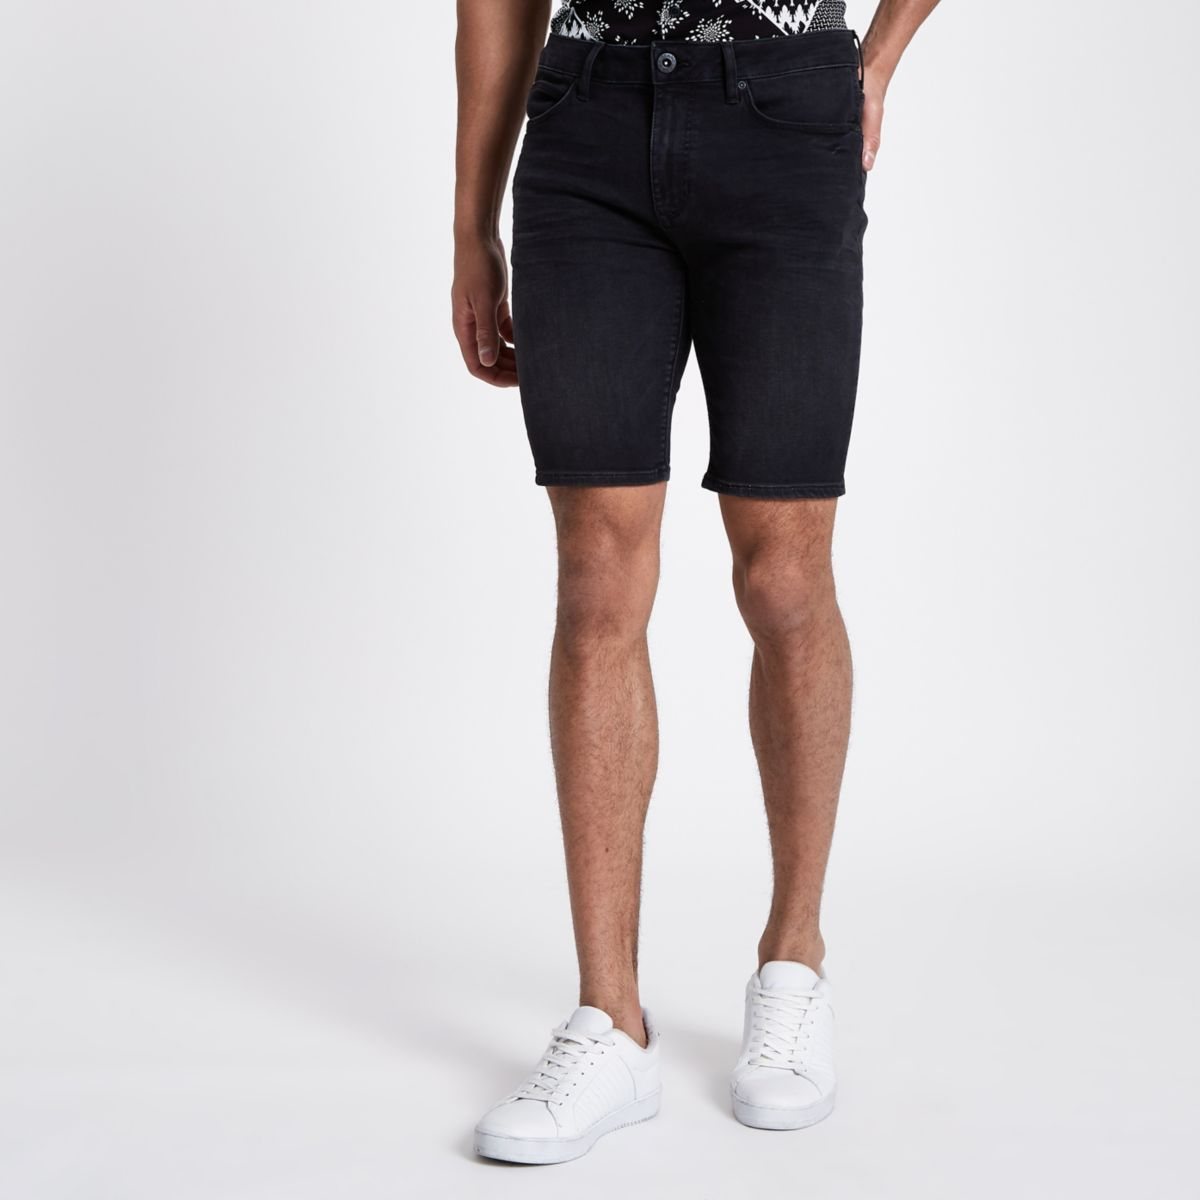 Black Ollie super skinny spray on shorts